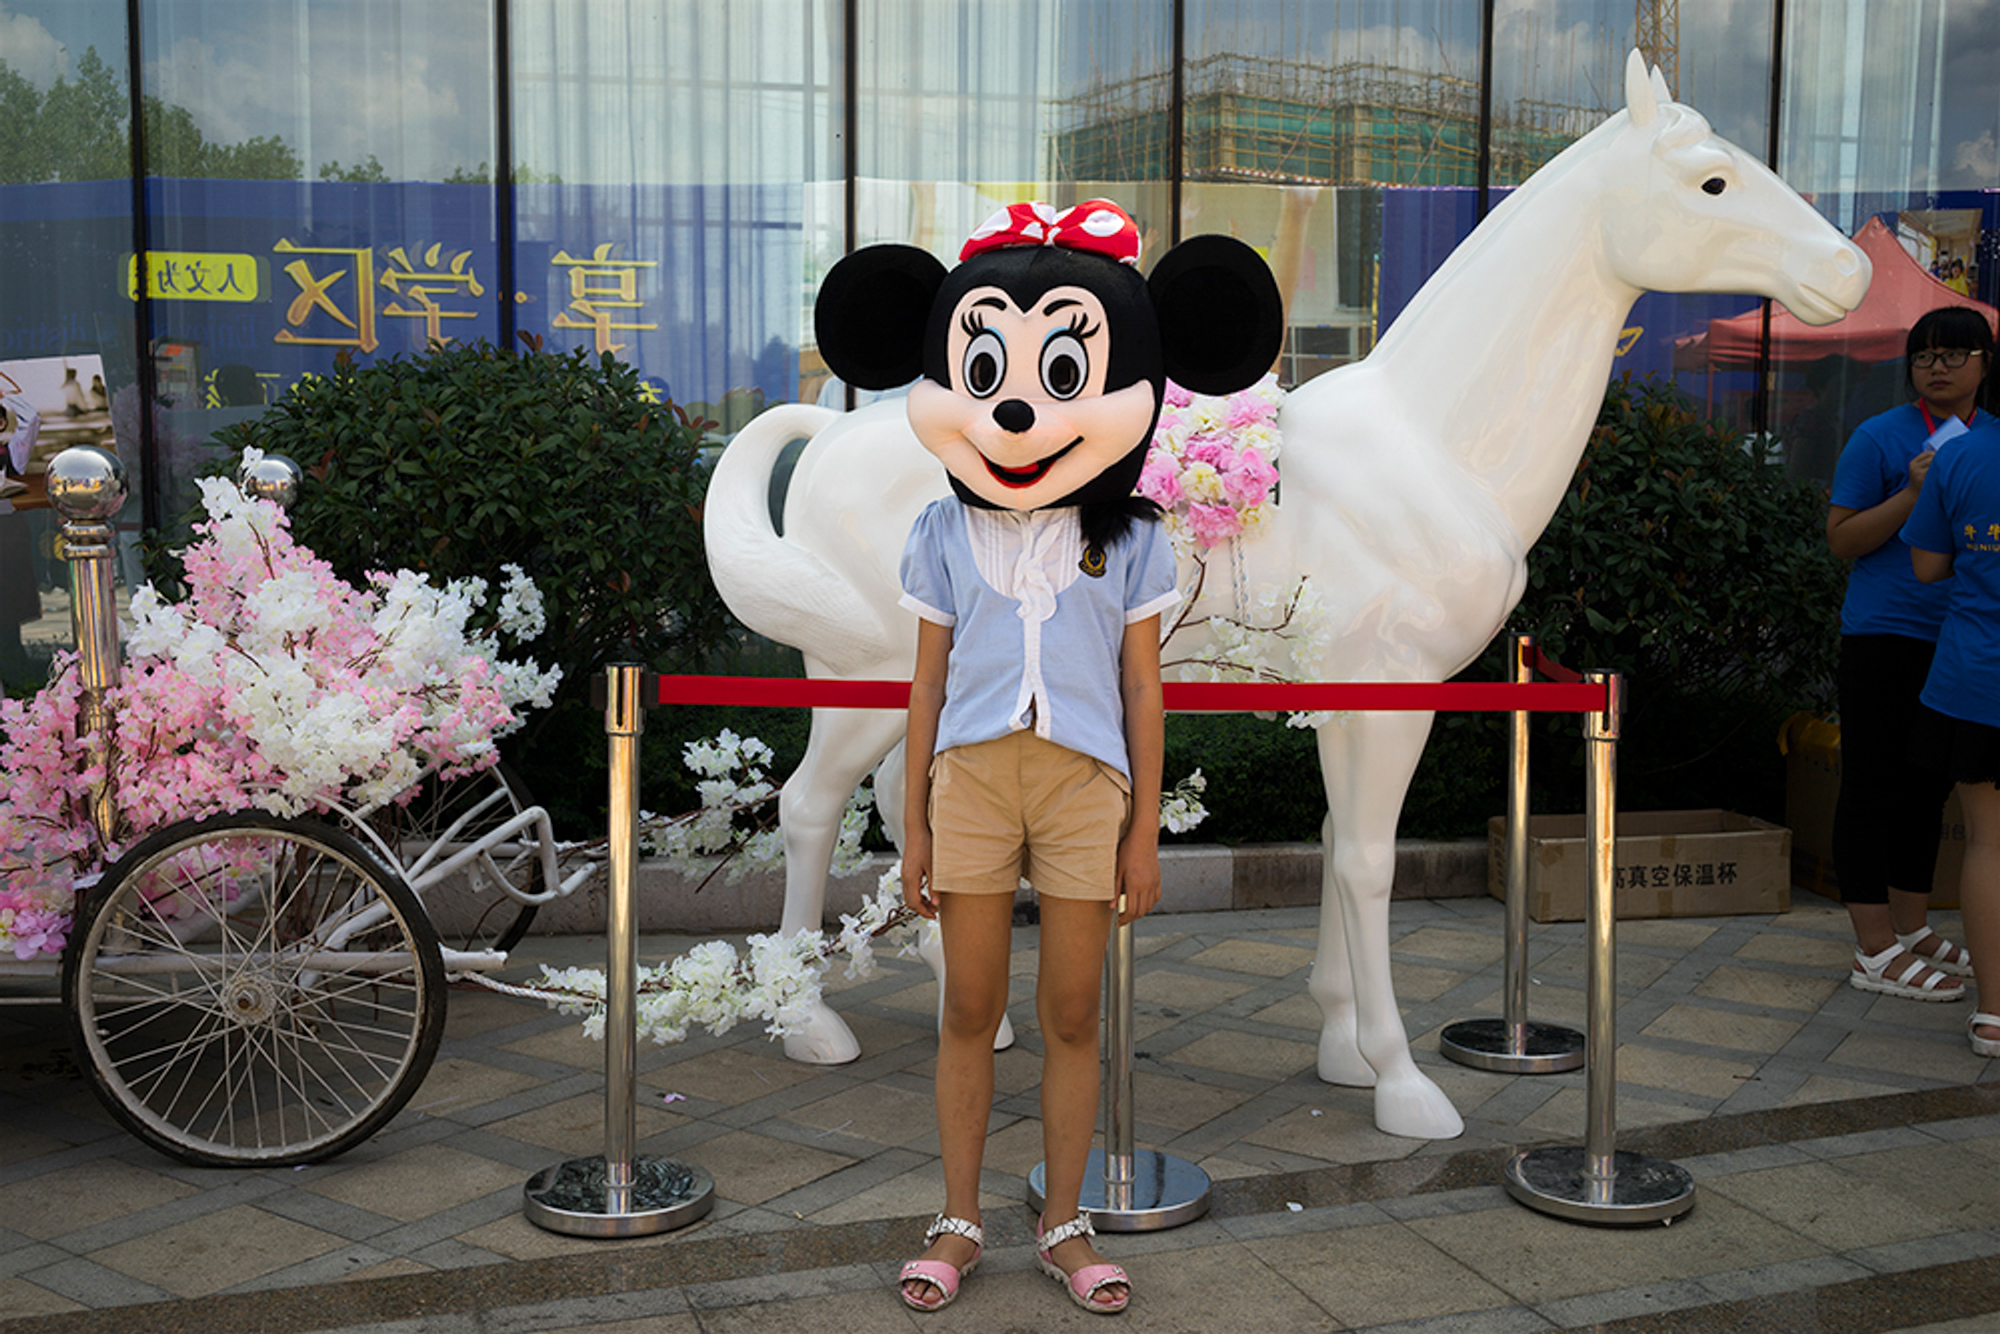 A child wears a Minnie Mouse costume for a photo in Mayu township, October 3, 2016. A real-estate sales center set out the cartoon objects and costumes to attract customers.